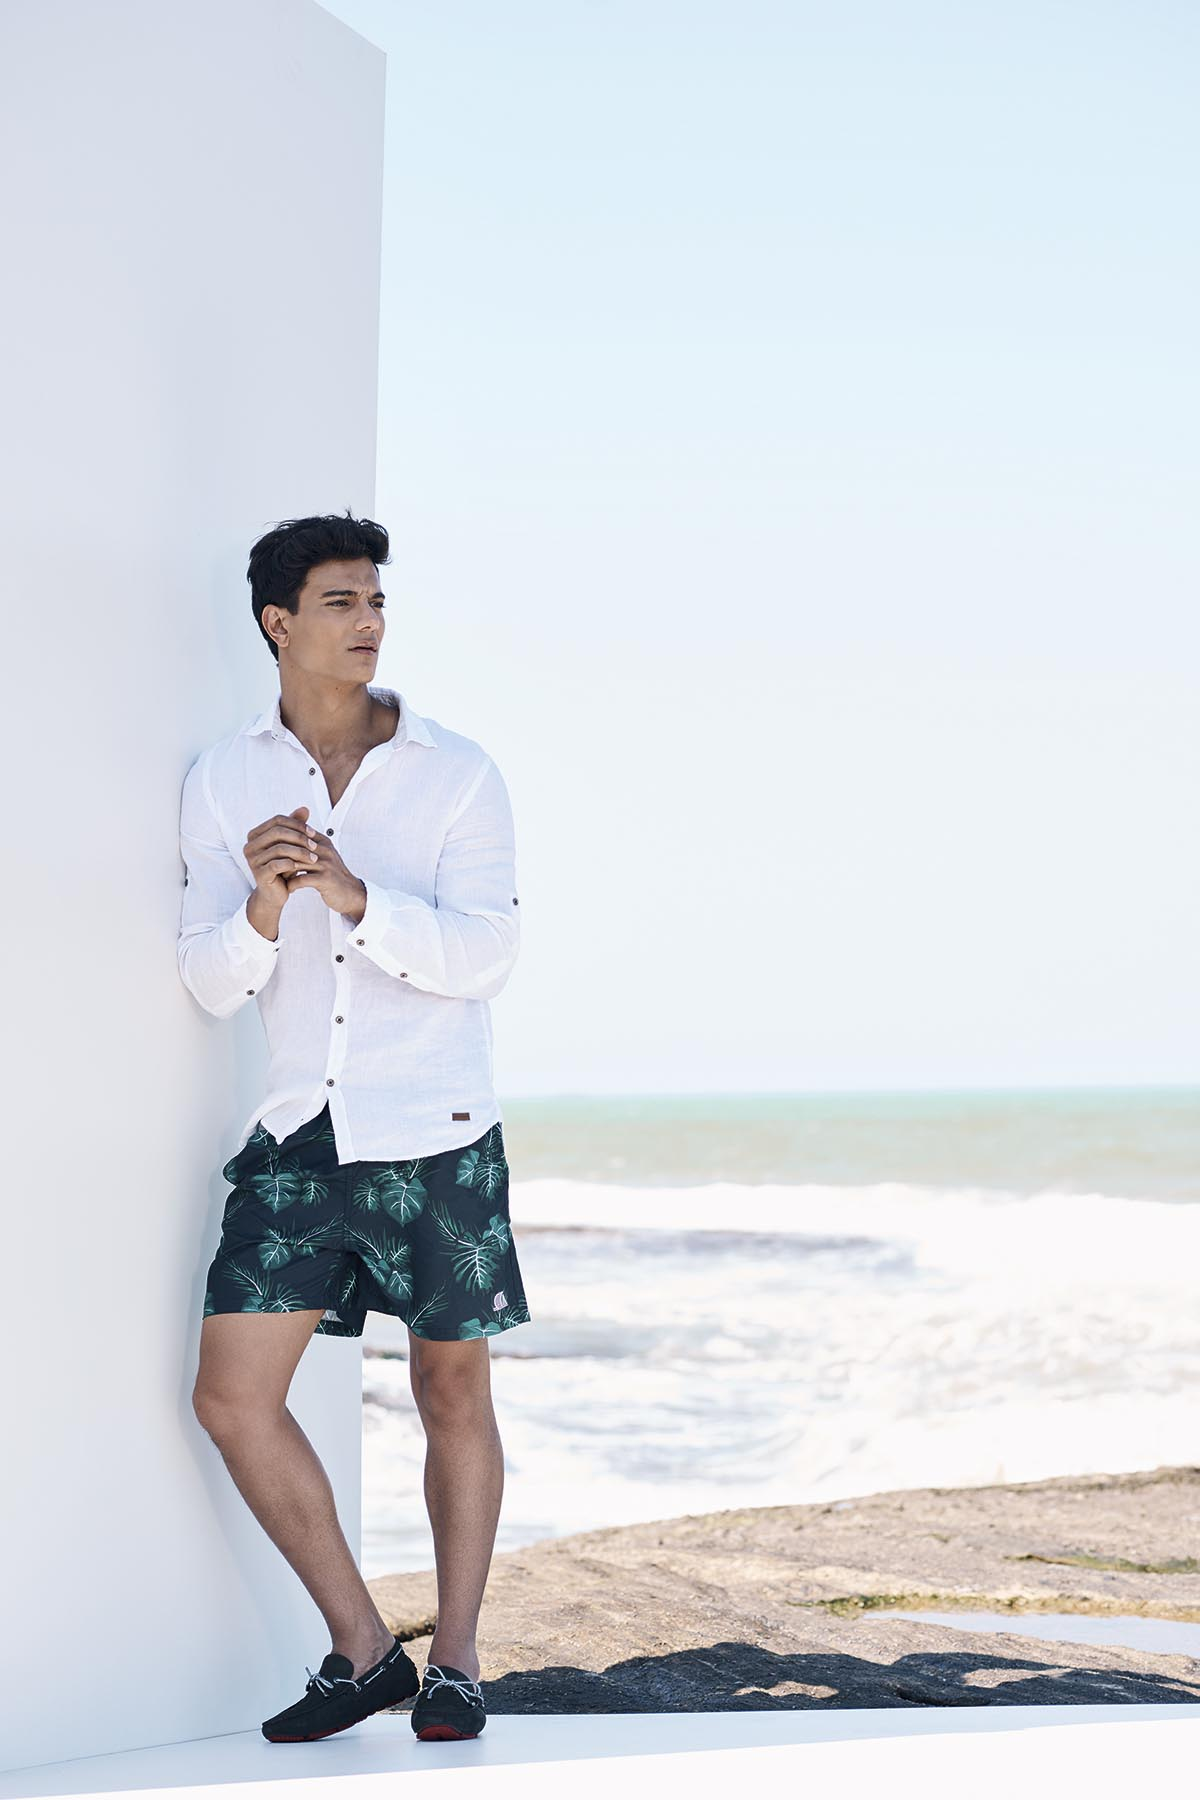 Sulevan Araujo by Chrystian Henrique for Catamaran with Brazilian Male Model